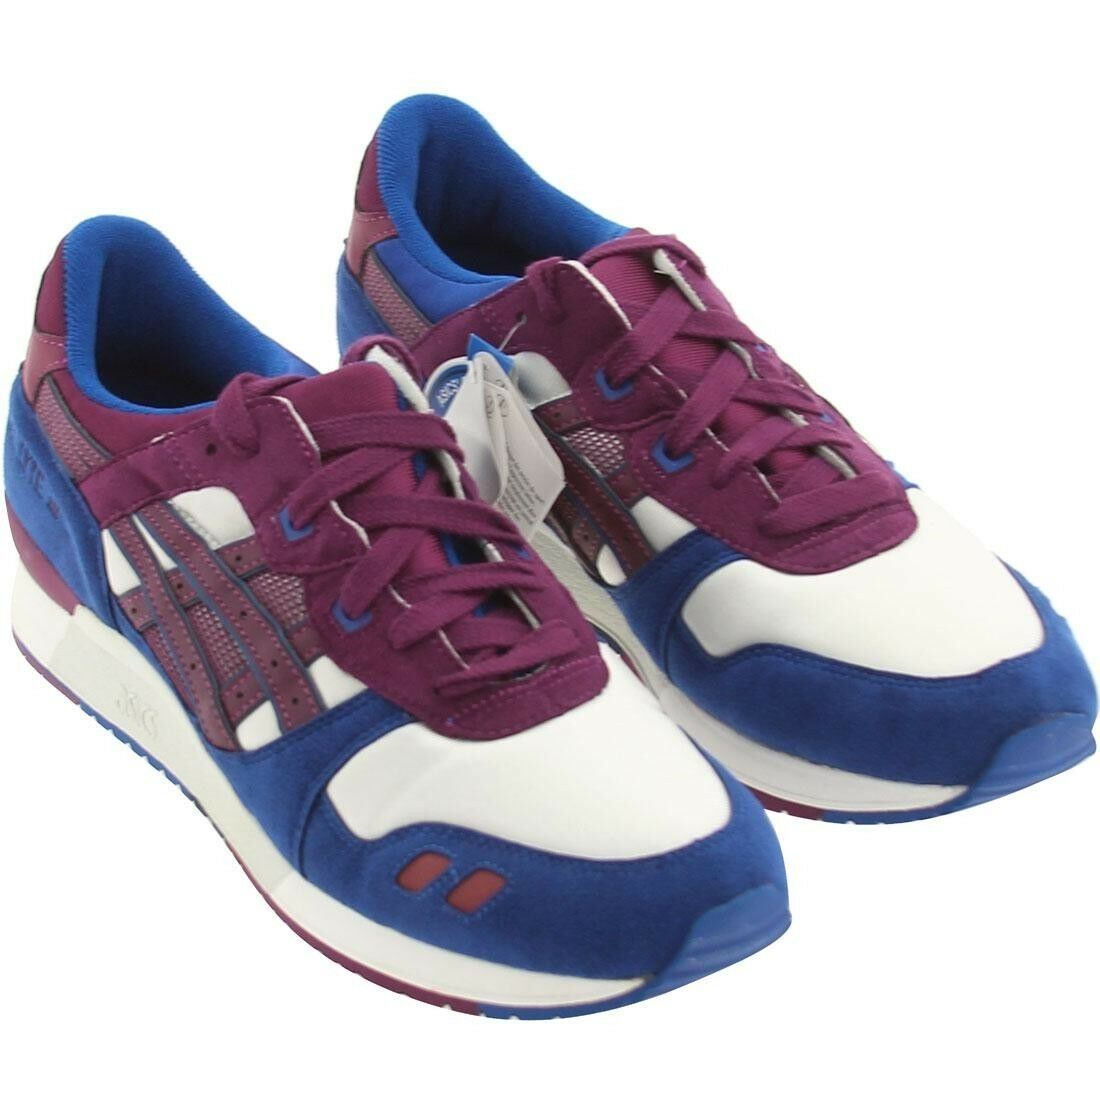 6.0 ASICS Men royal Gel-Lyte III 3 white royal Men purple ronnie fieg shadow d6f463